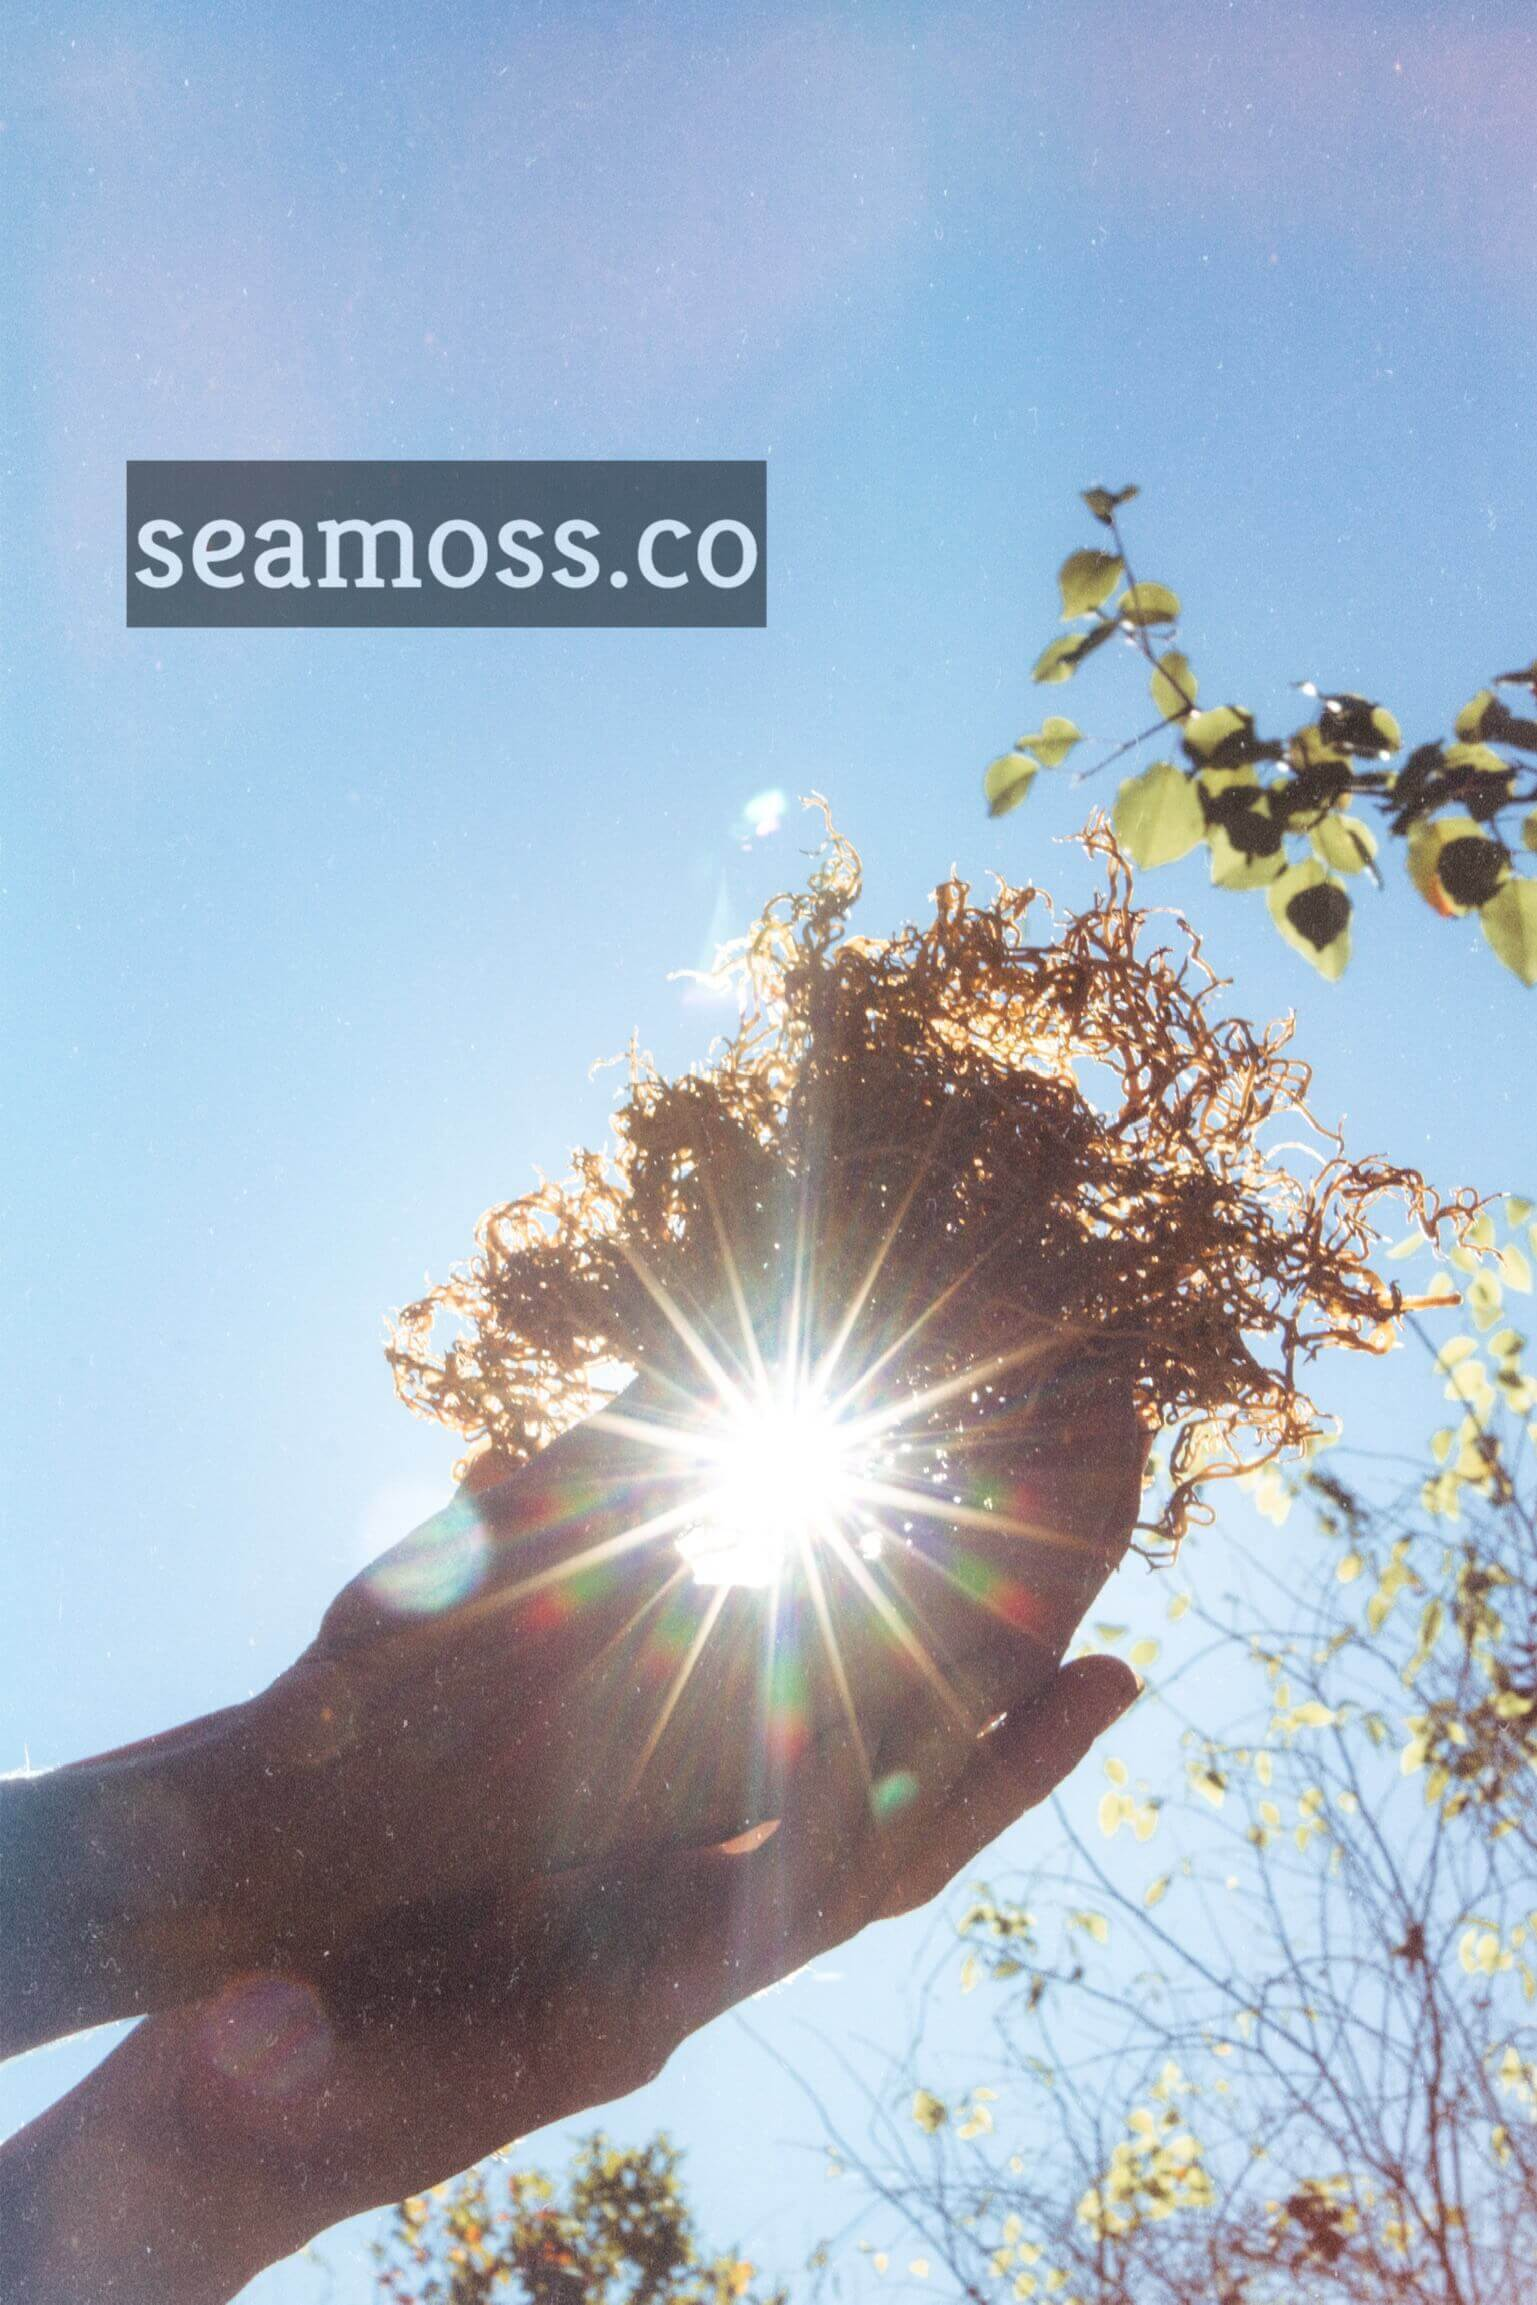 Holding Sea Moss in the Sun